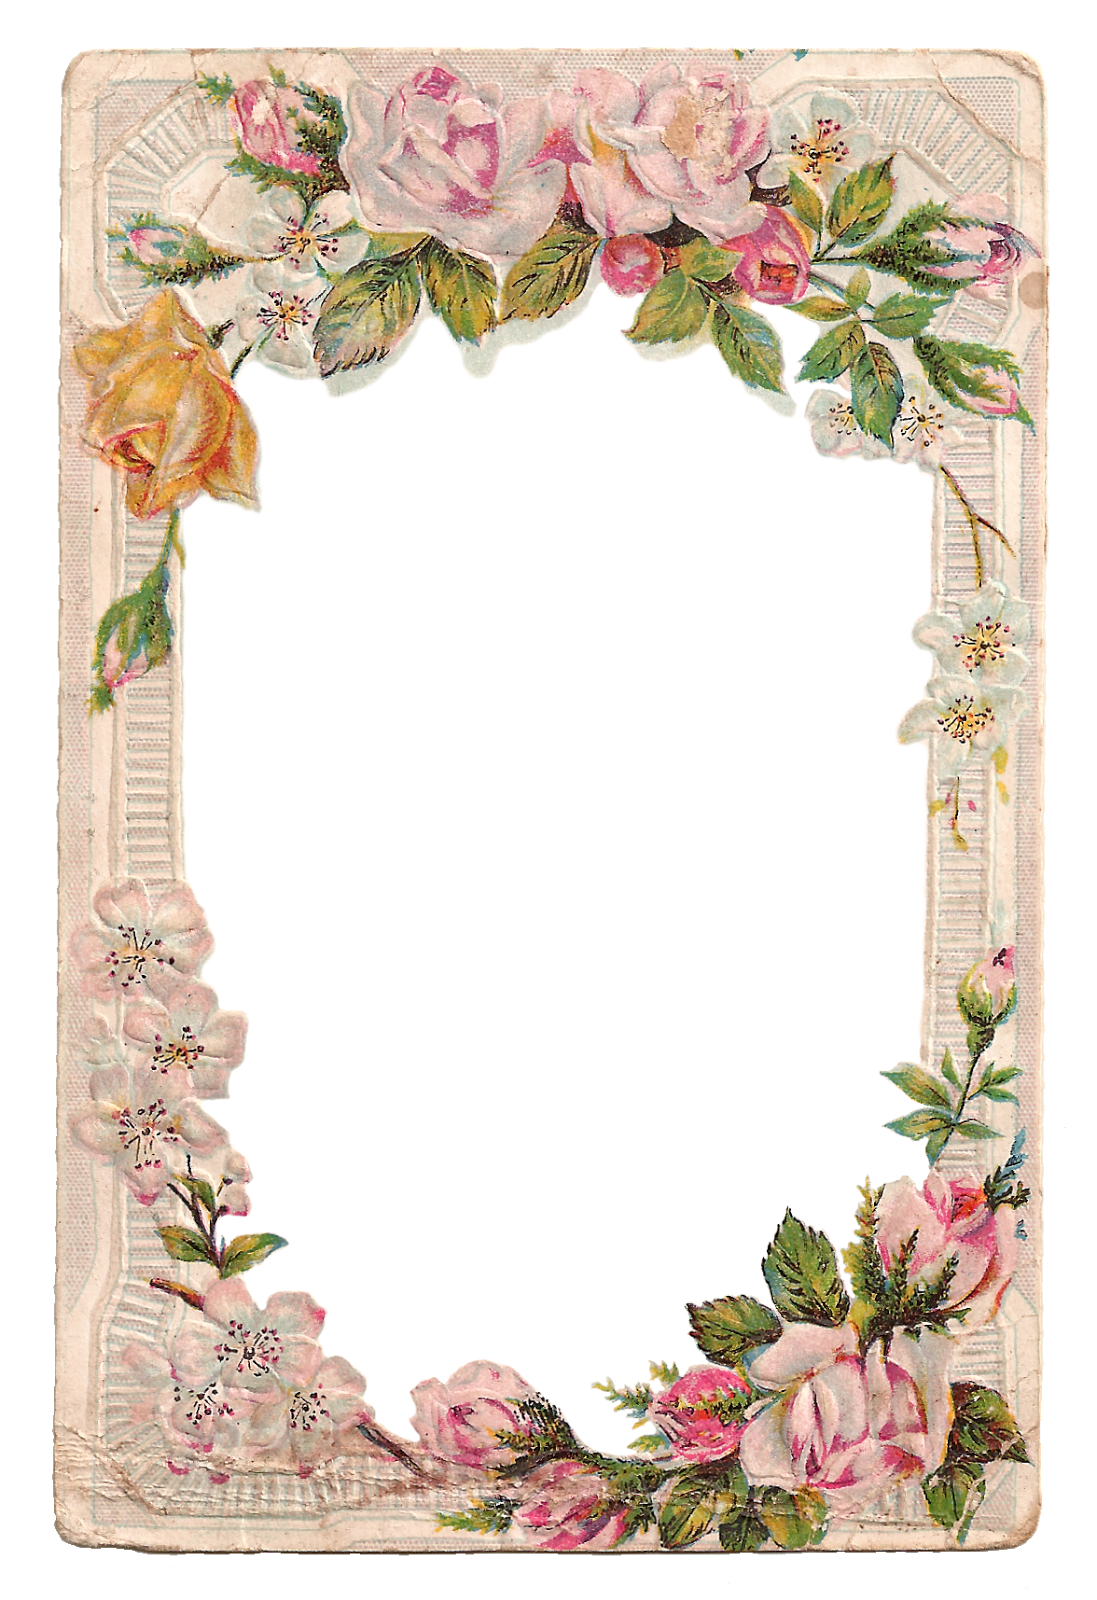 Free Digital Flower Frame with Roses, Dogwood, Cats and